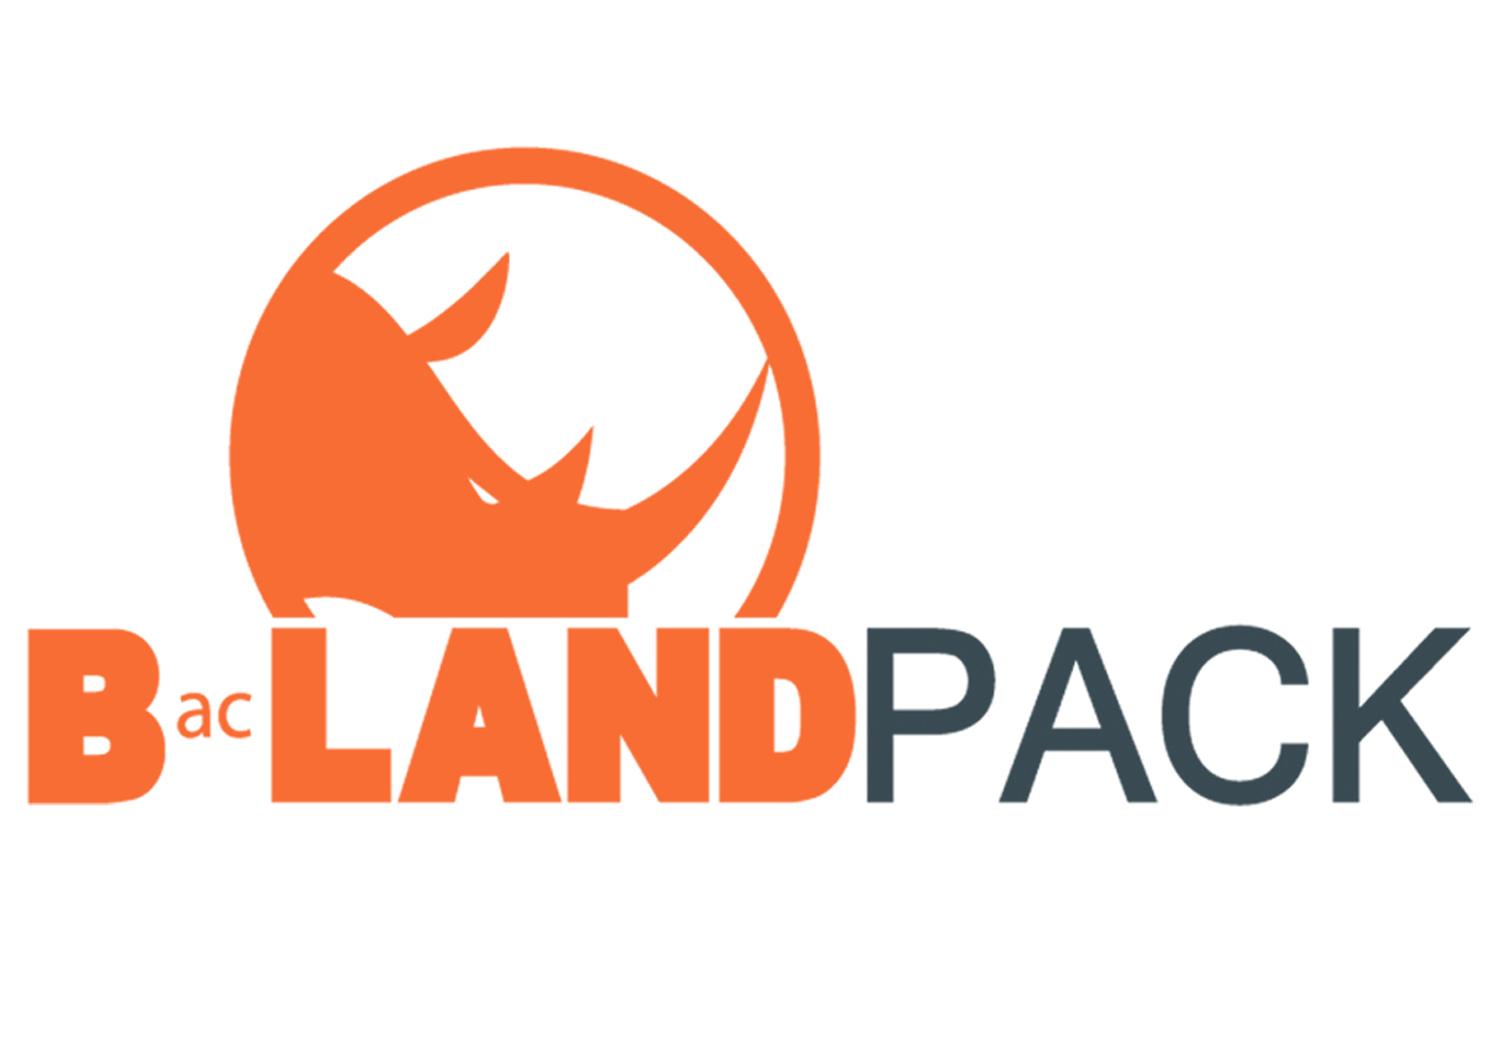 BAC-LAND PACK